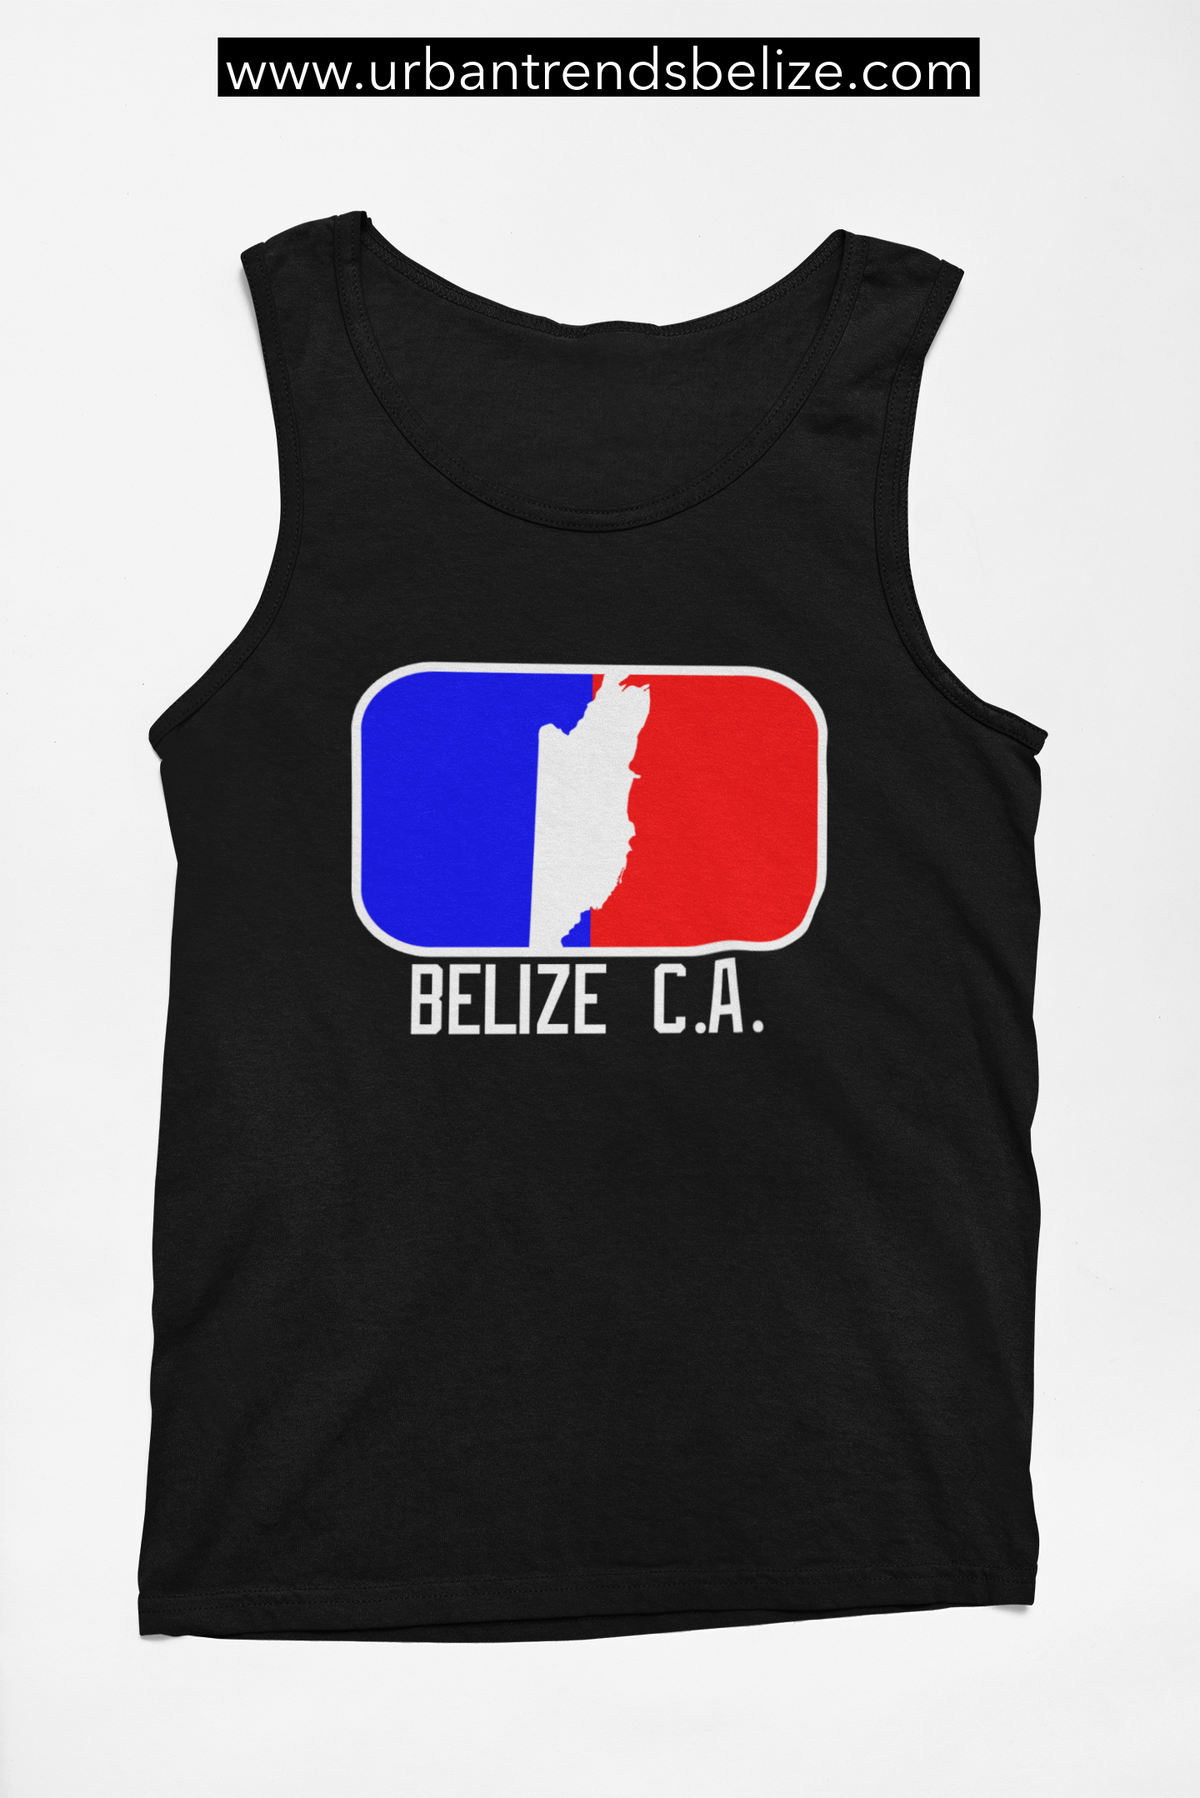 Image of BELIZE - TANK TOP - MAJOR LEAGE BLACK/RED/BLUE/WHITE